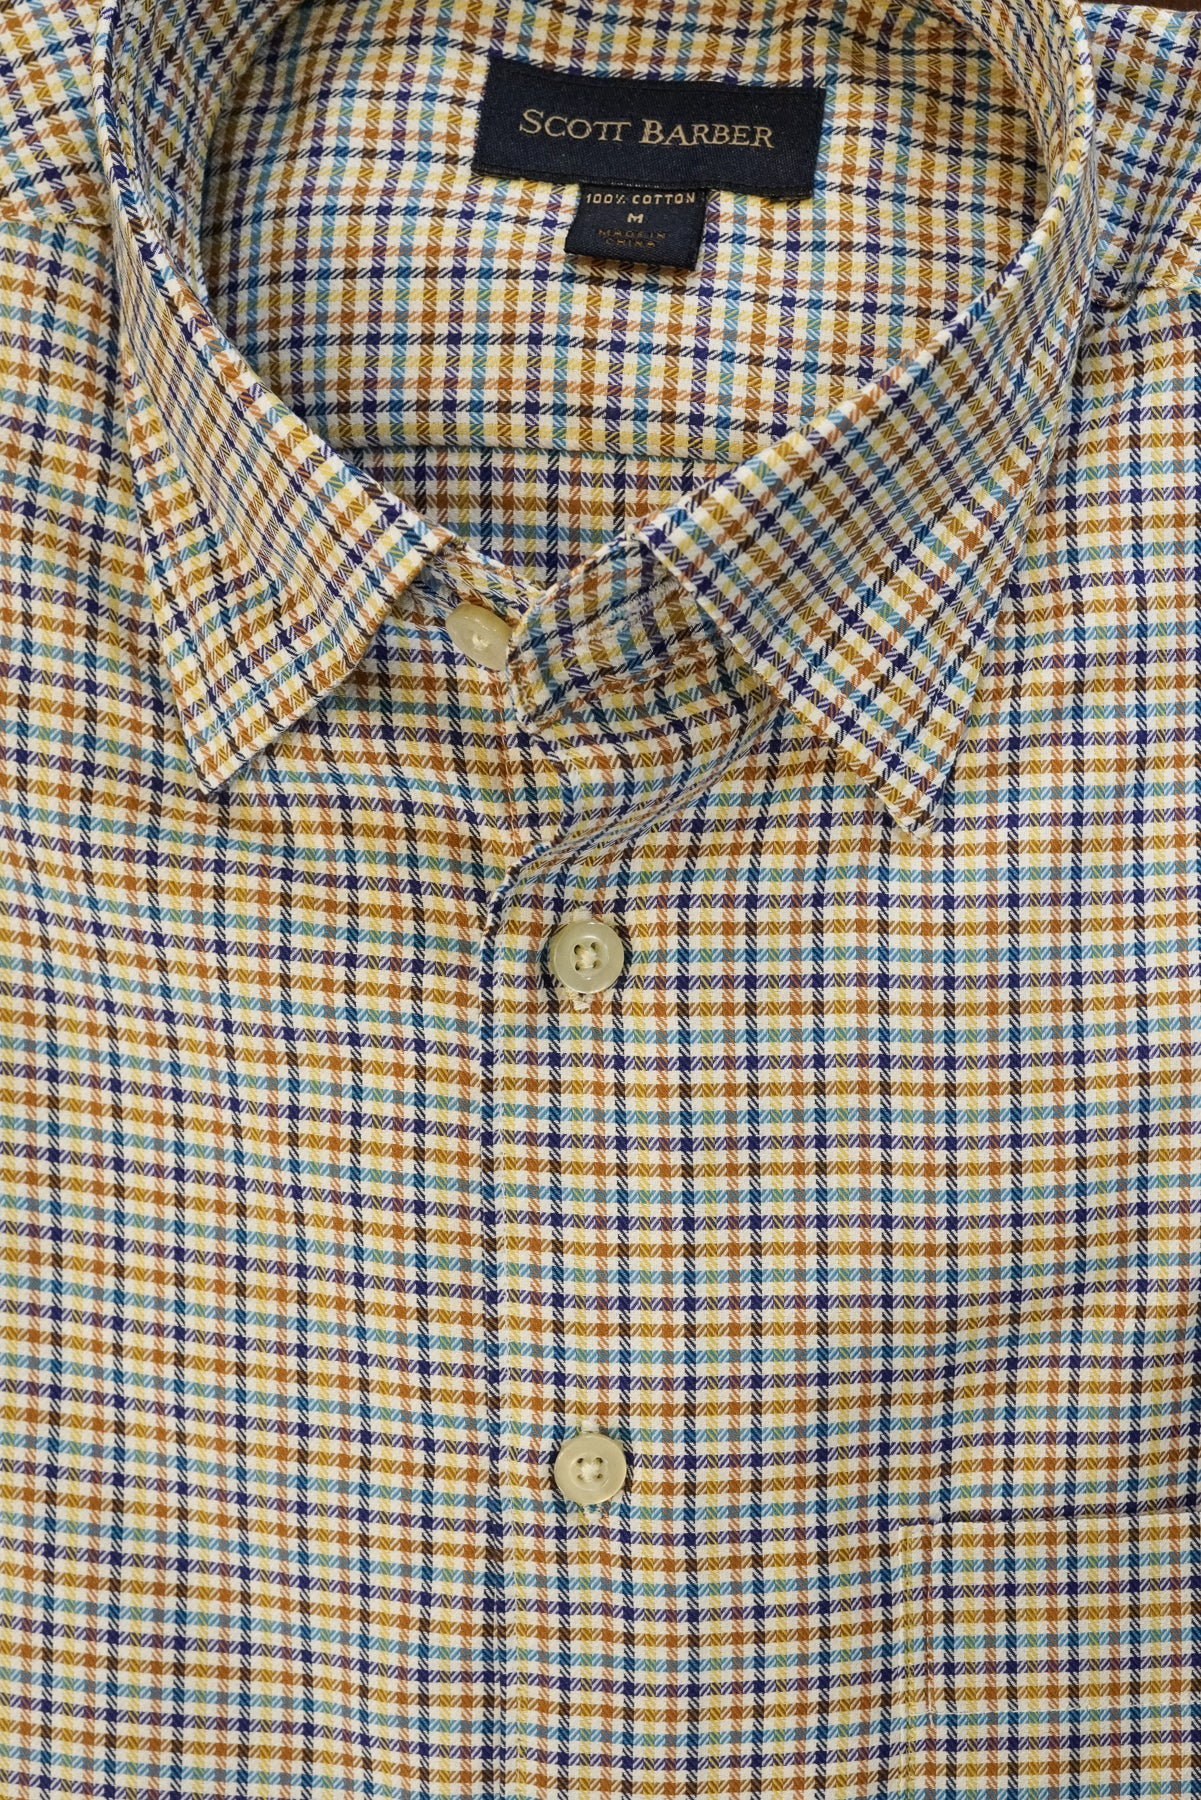 Camel and Blue Multi Check Hidden Button Down Sport Shirt by Scott Barber - Rainwater's